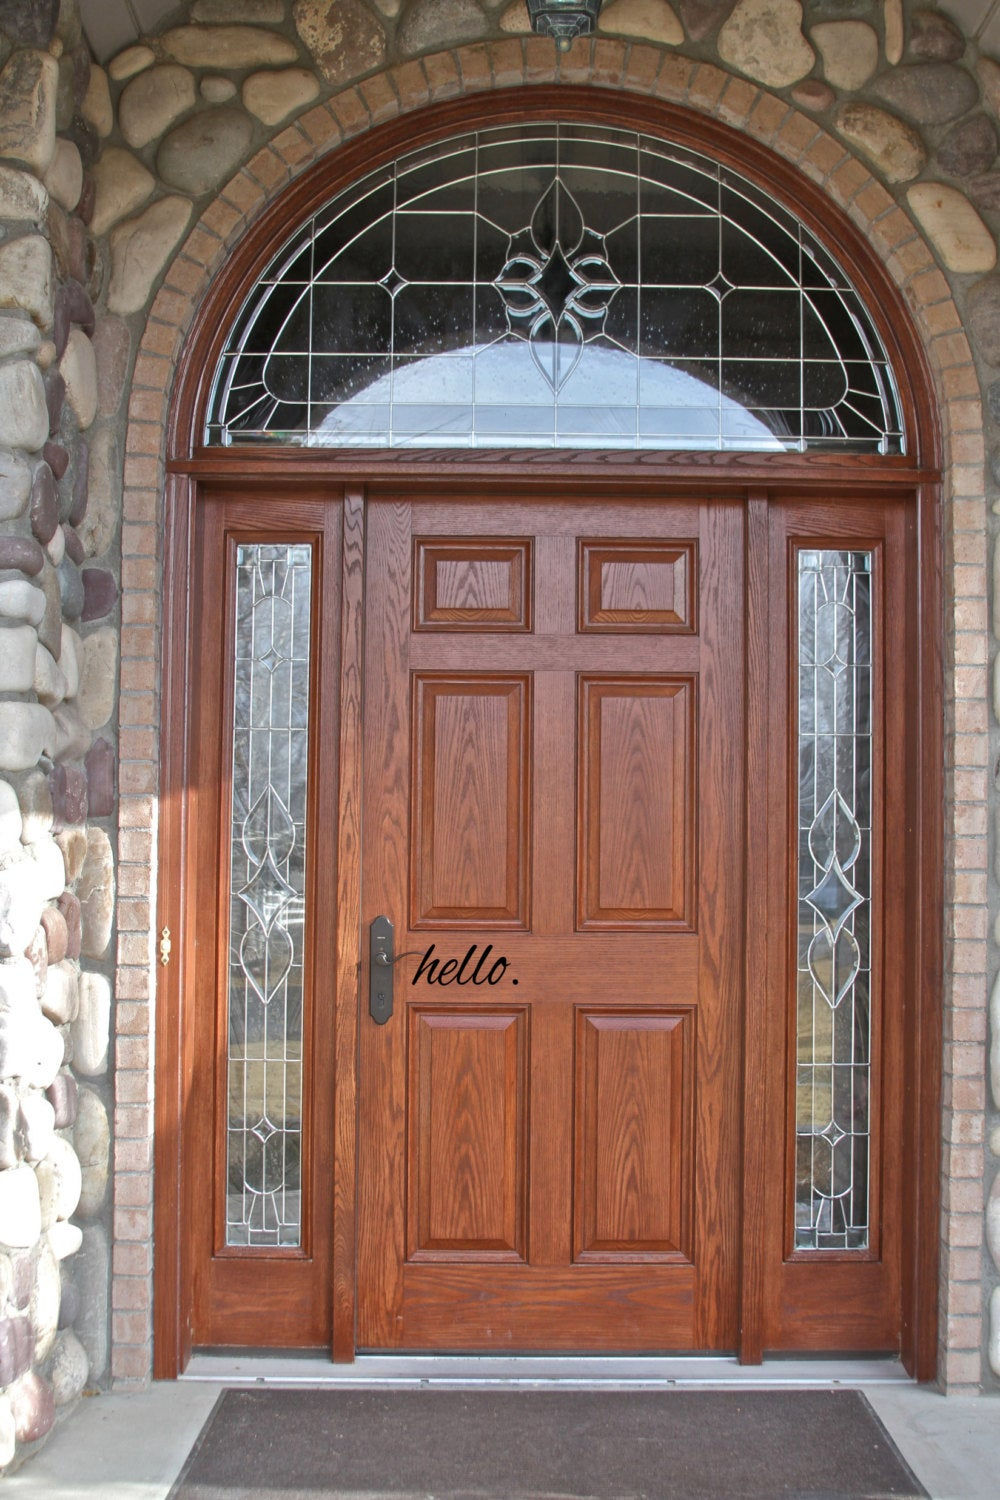 Hello Door Decal // Front Door // Entryway // House // Home // Decor // Sign // Sticker // Cling // Decoration // Welcome Home // Welcome